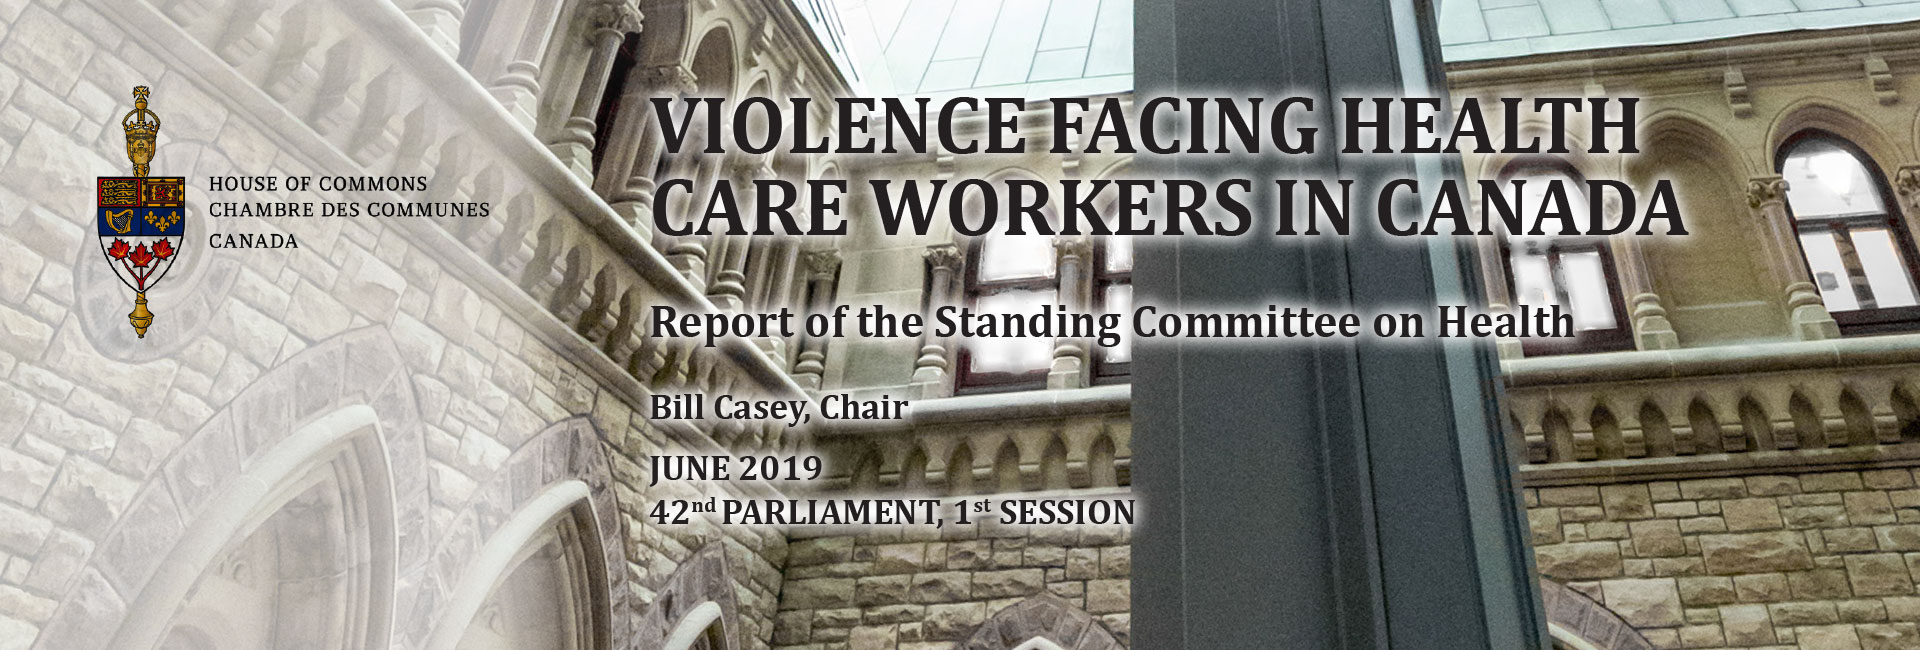 Violence Facing Health Care Workers in Canada